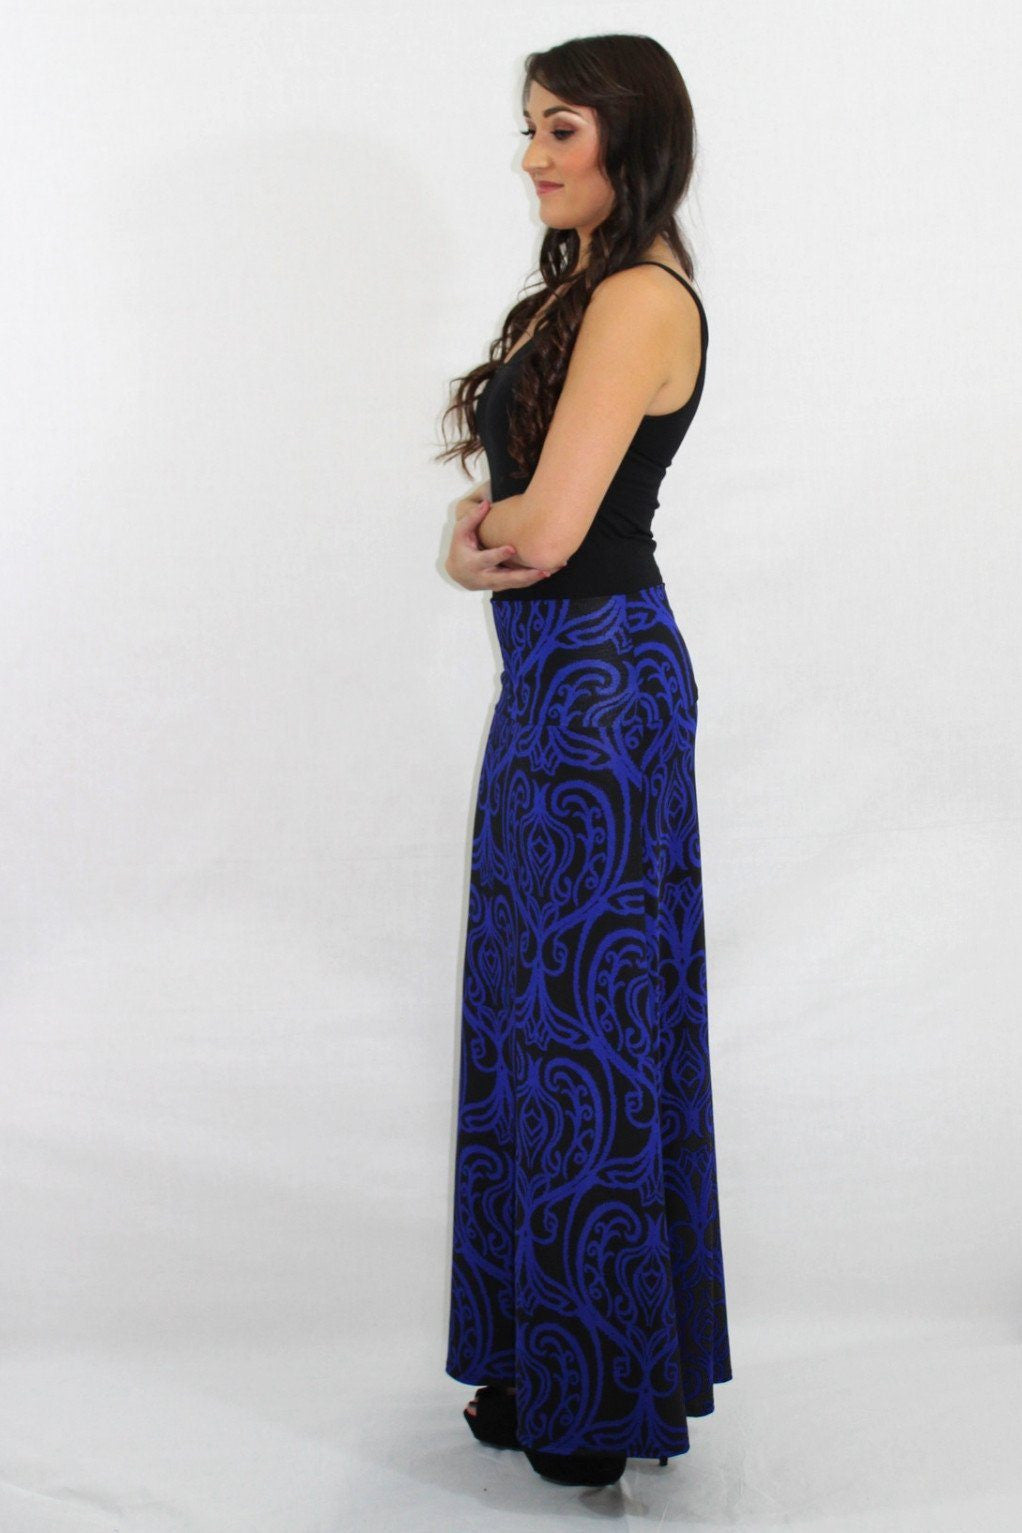 Stop and Stare Damask Blue Maxi Skirt - The Laguna Room